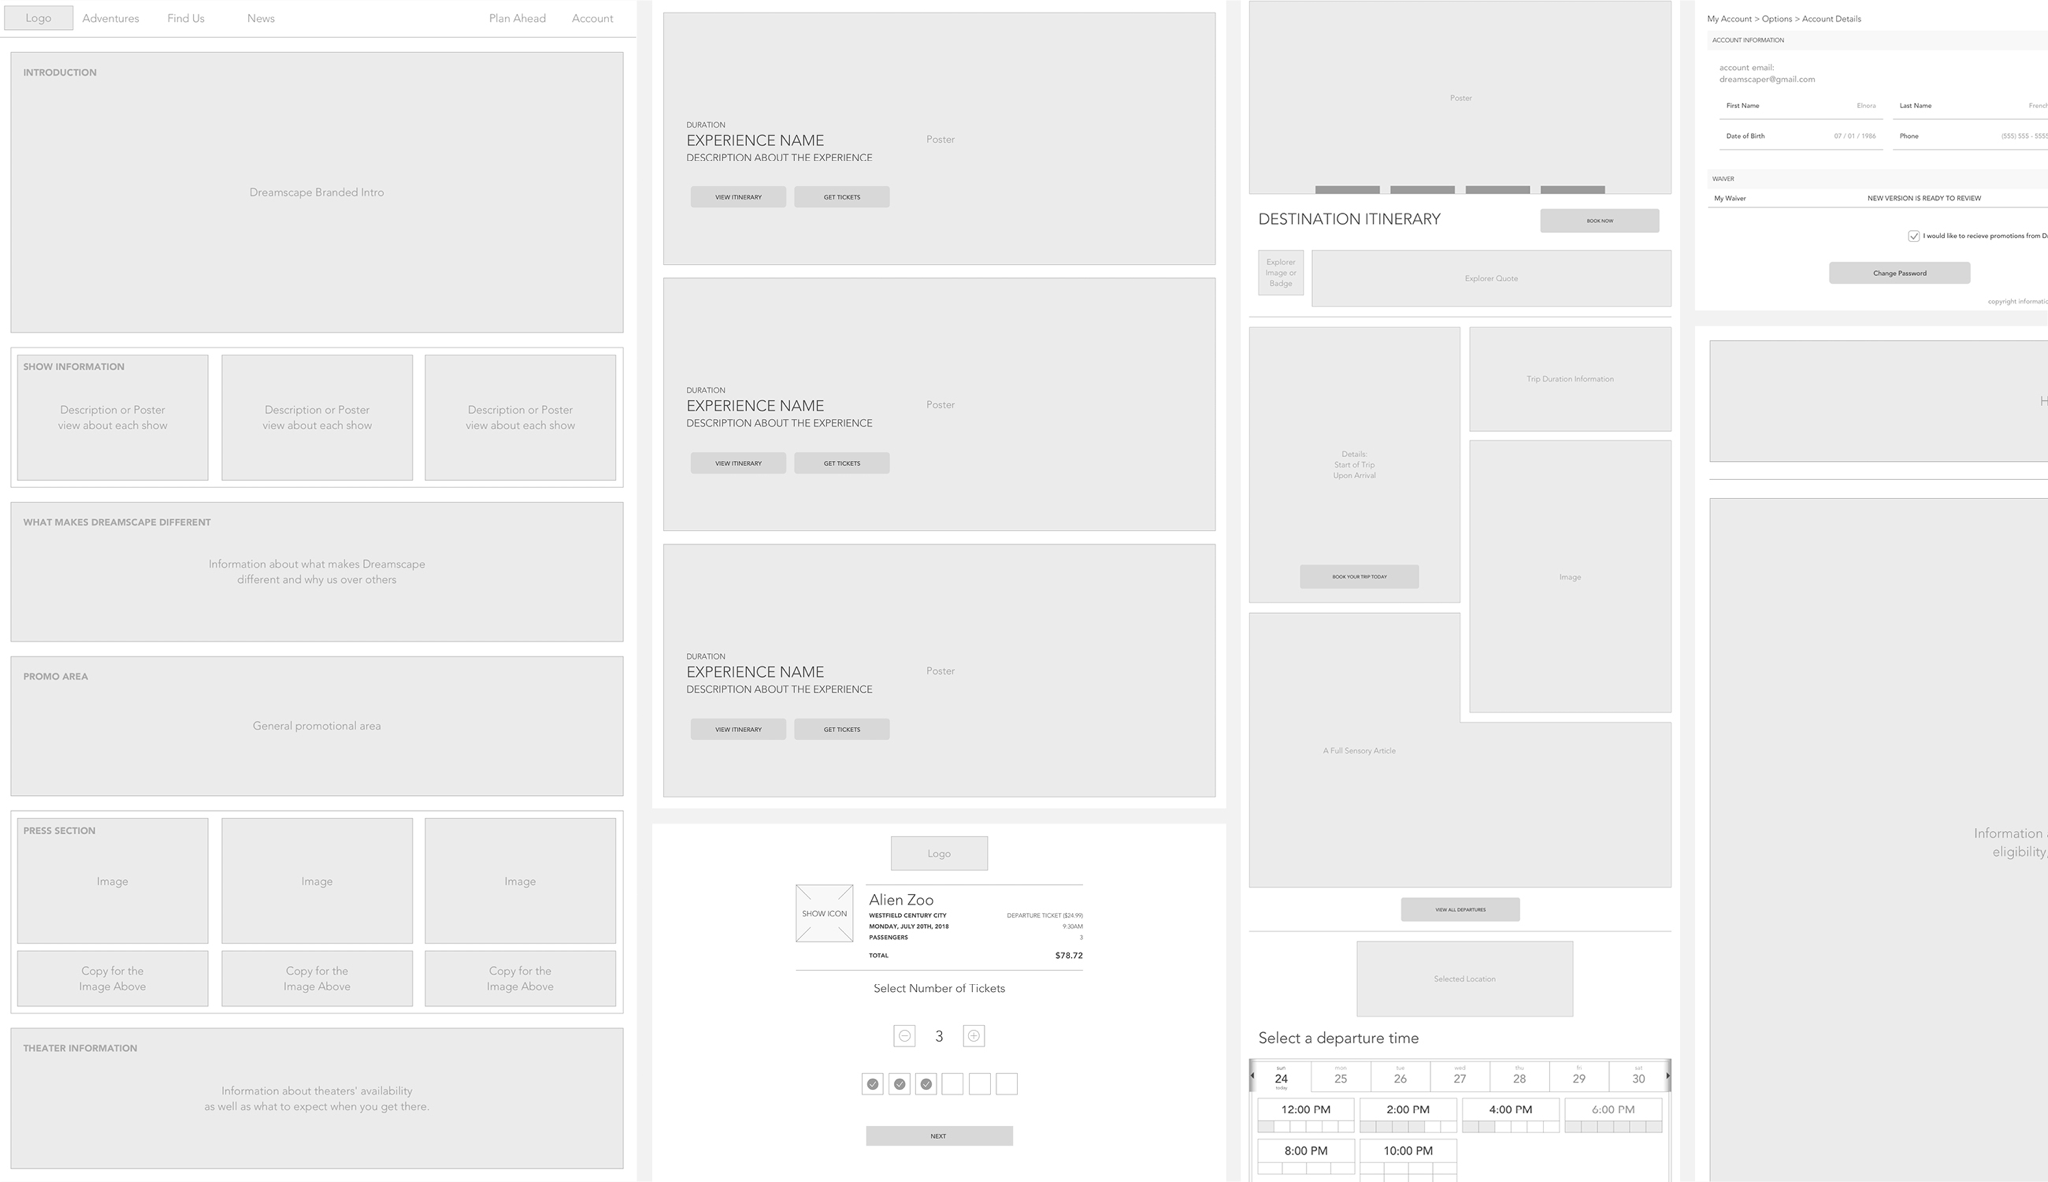 wireframe image.png